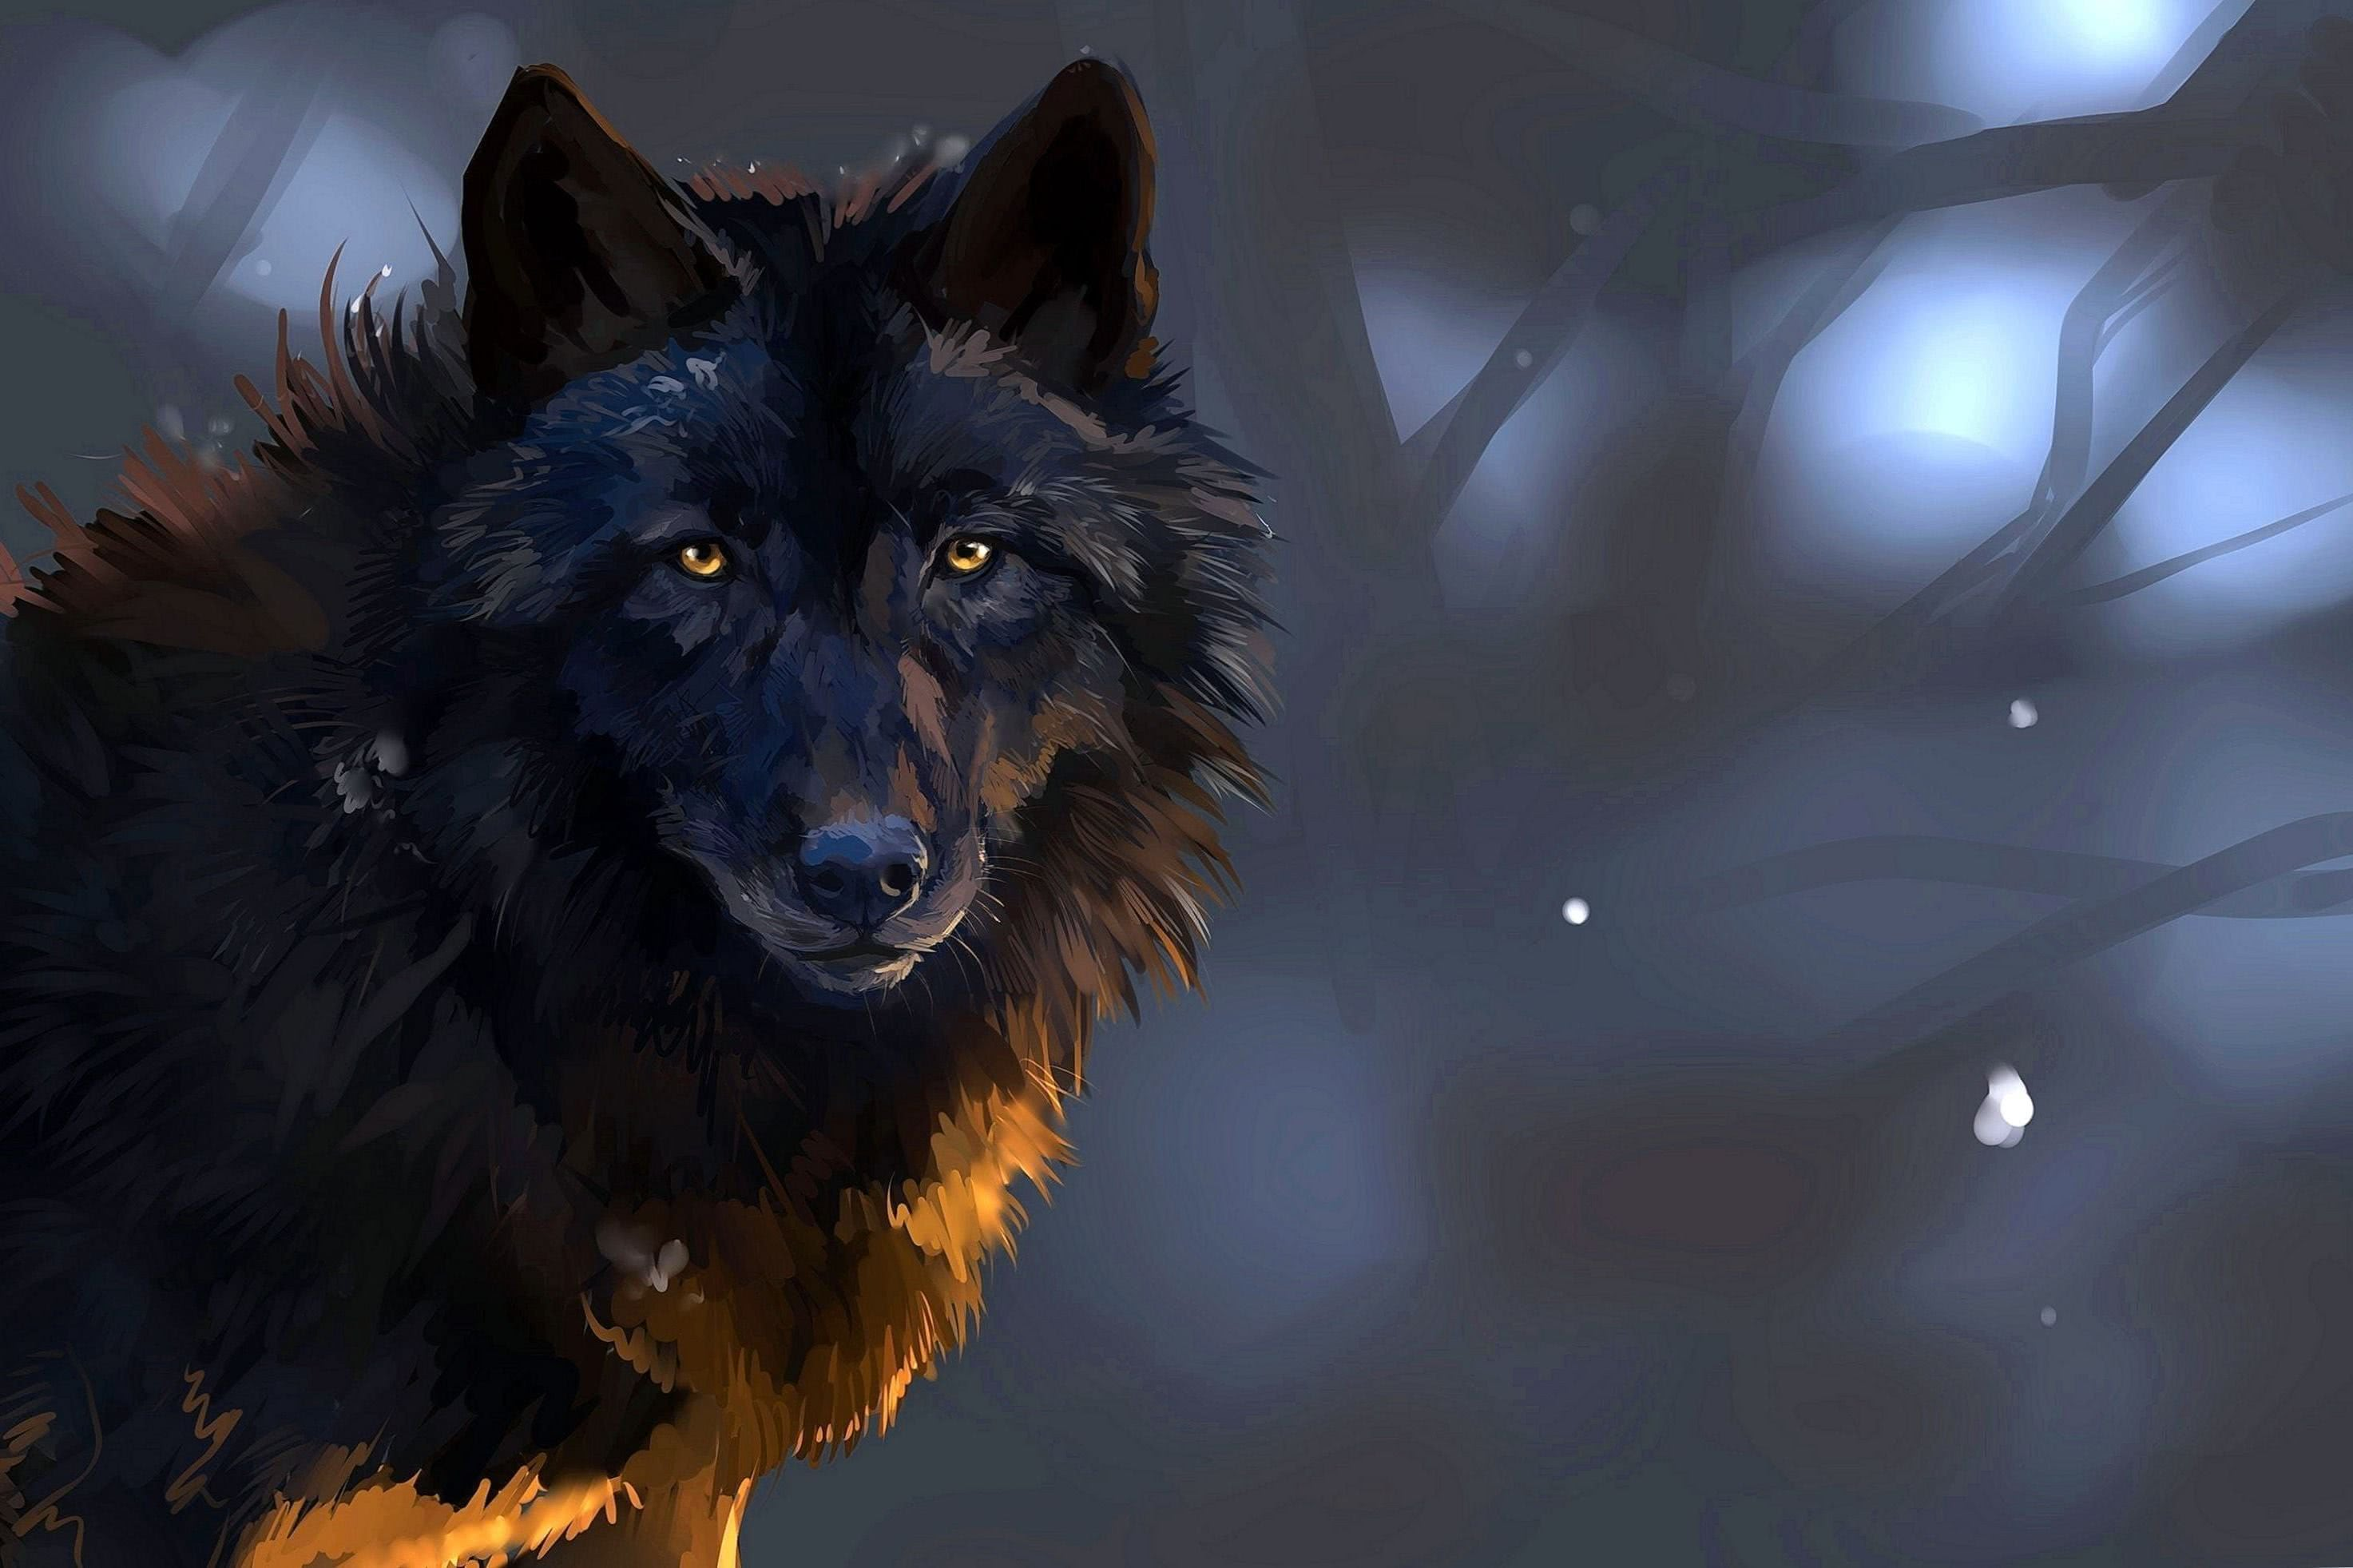 Wolf Wallpapers HD For Desktop